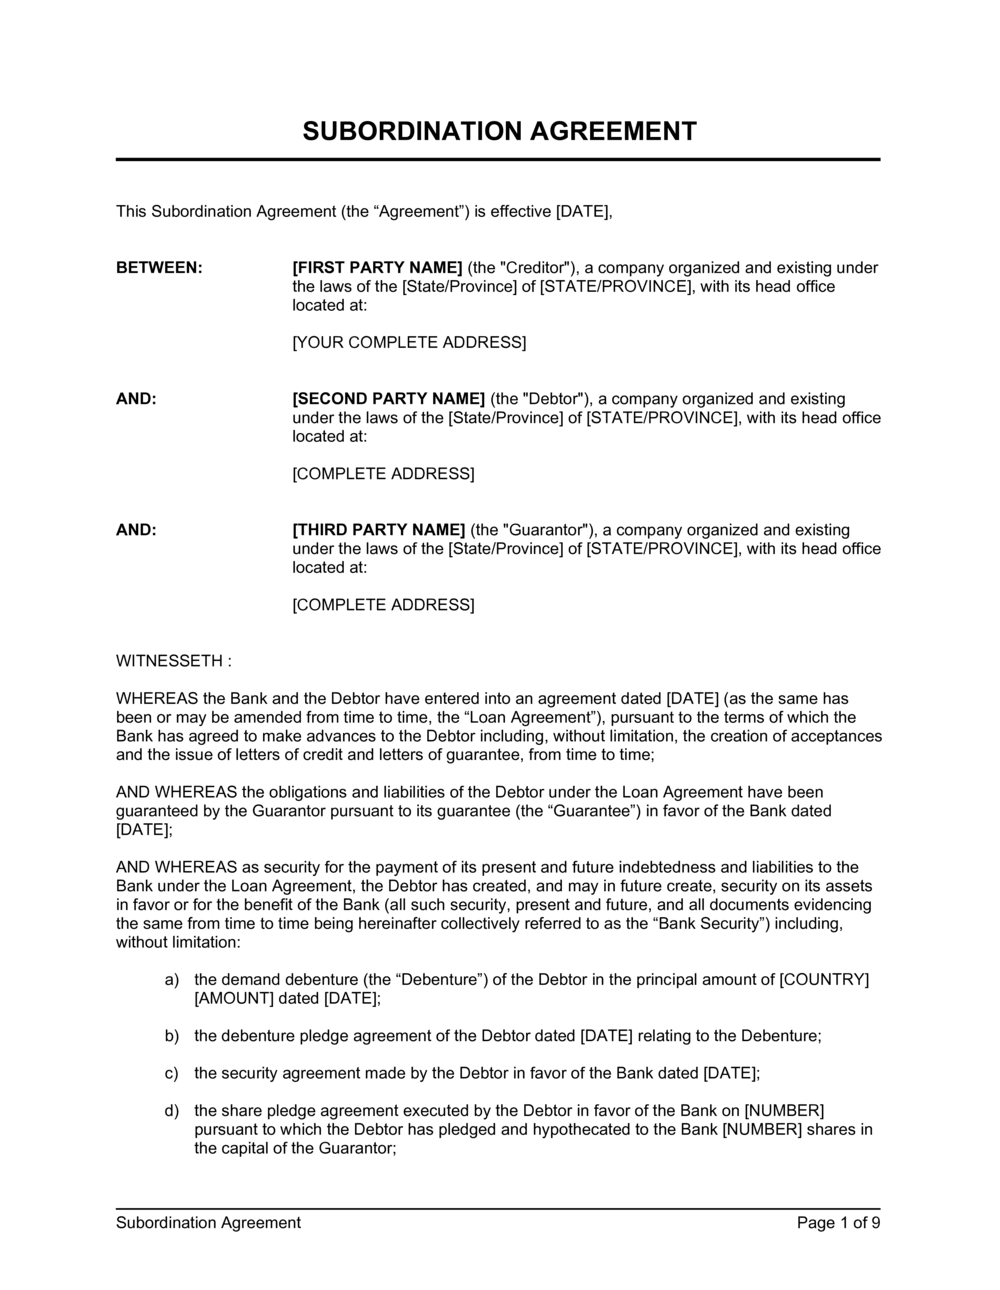 Business-in-a-Box's Subordination Agreement Long Form Template